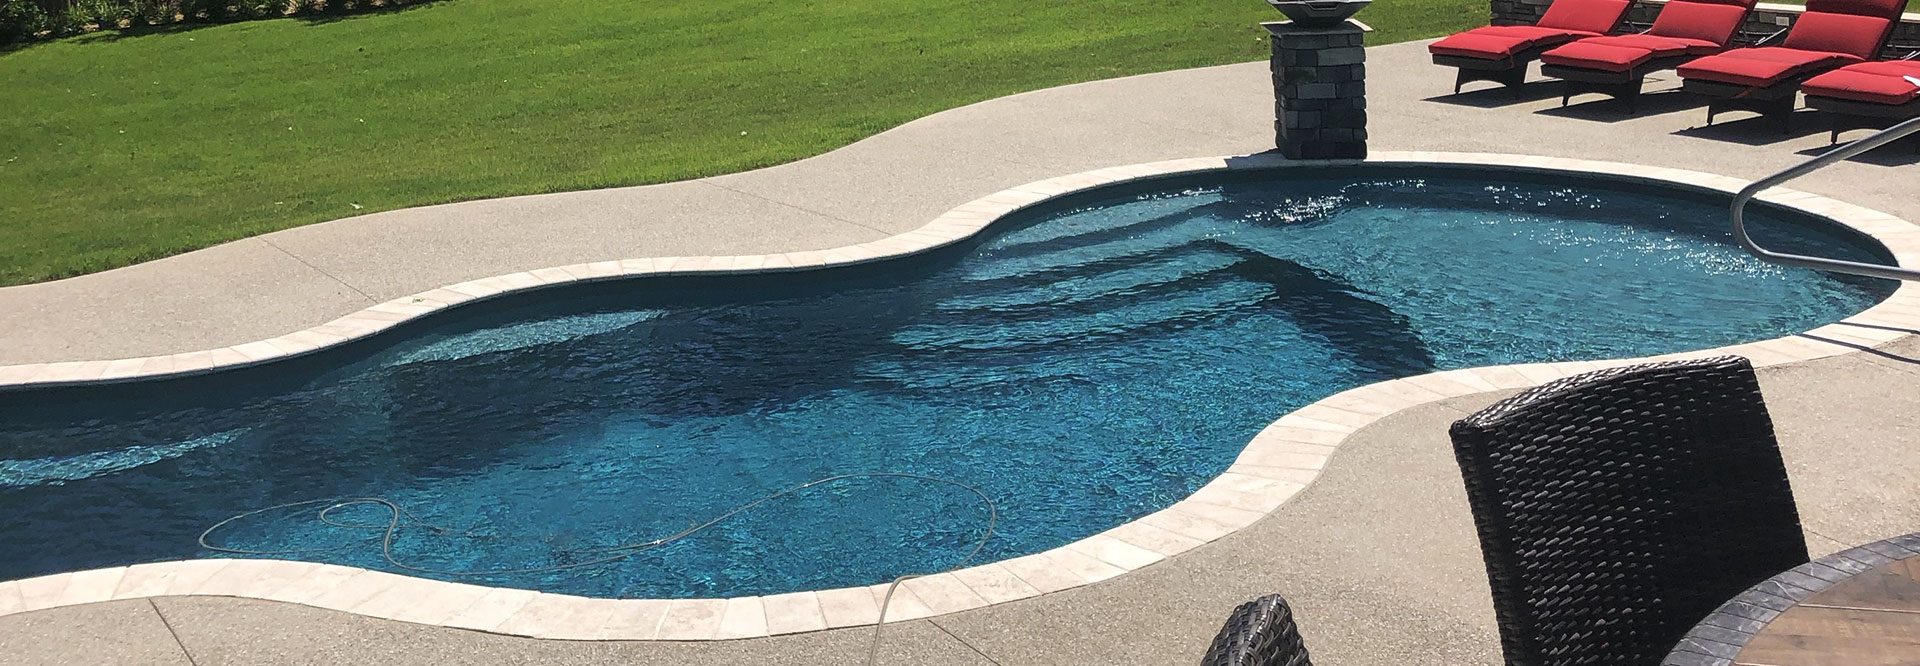 Knickerbocker Pools offers the the best fiberglass pool for your money.